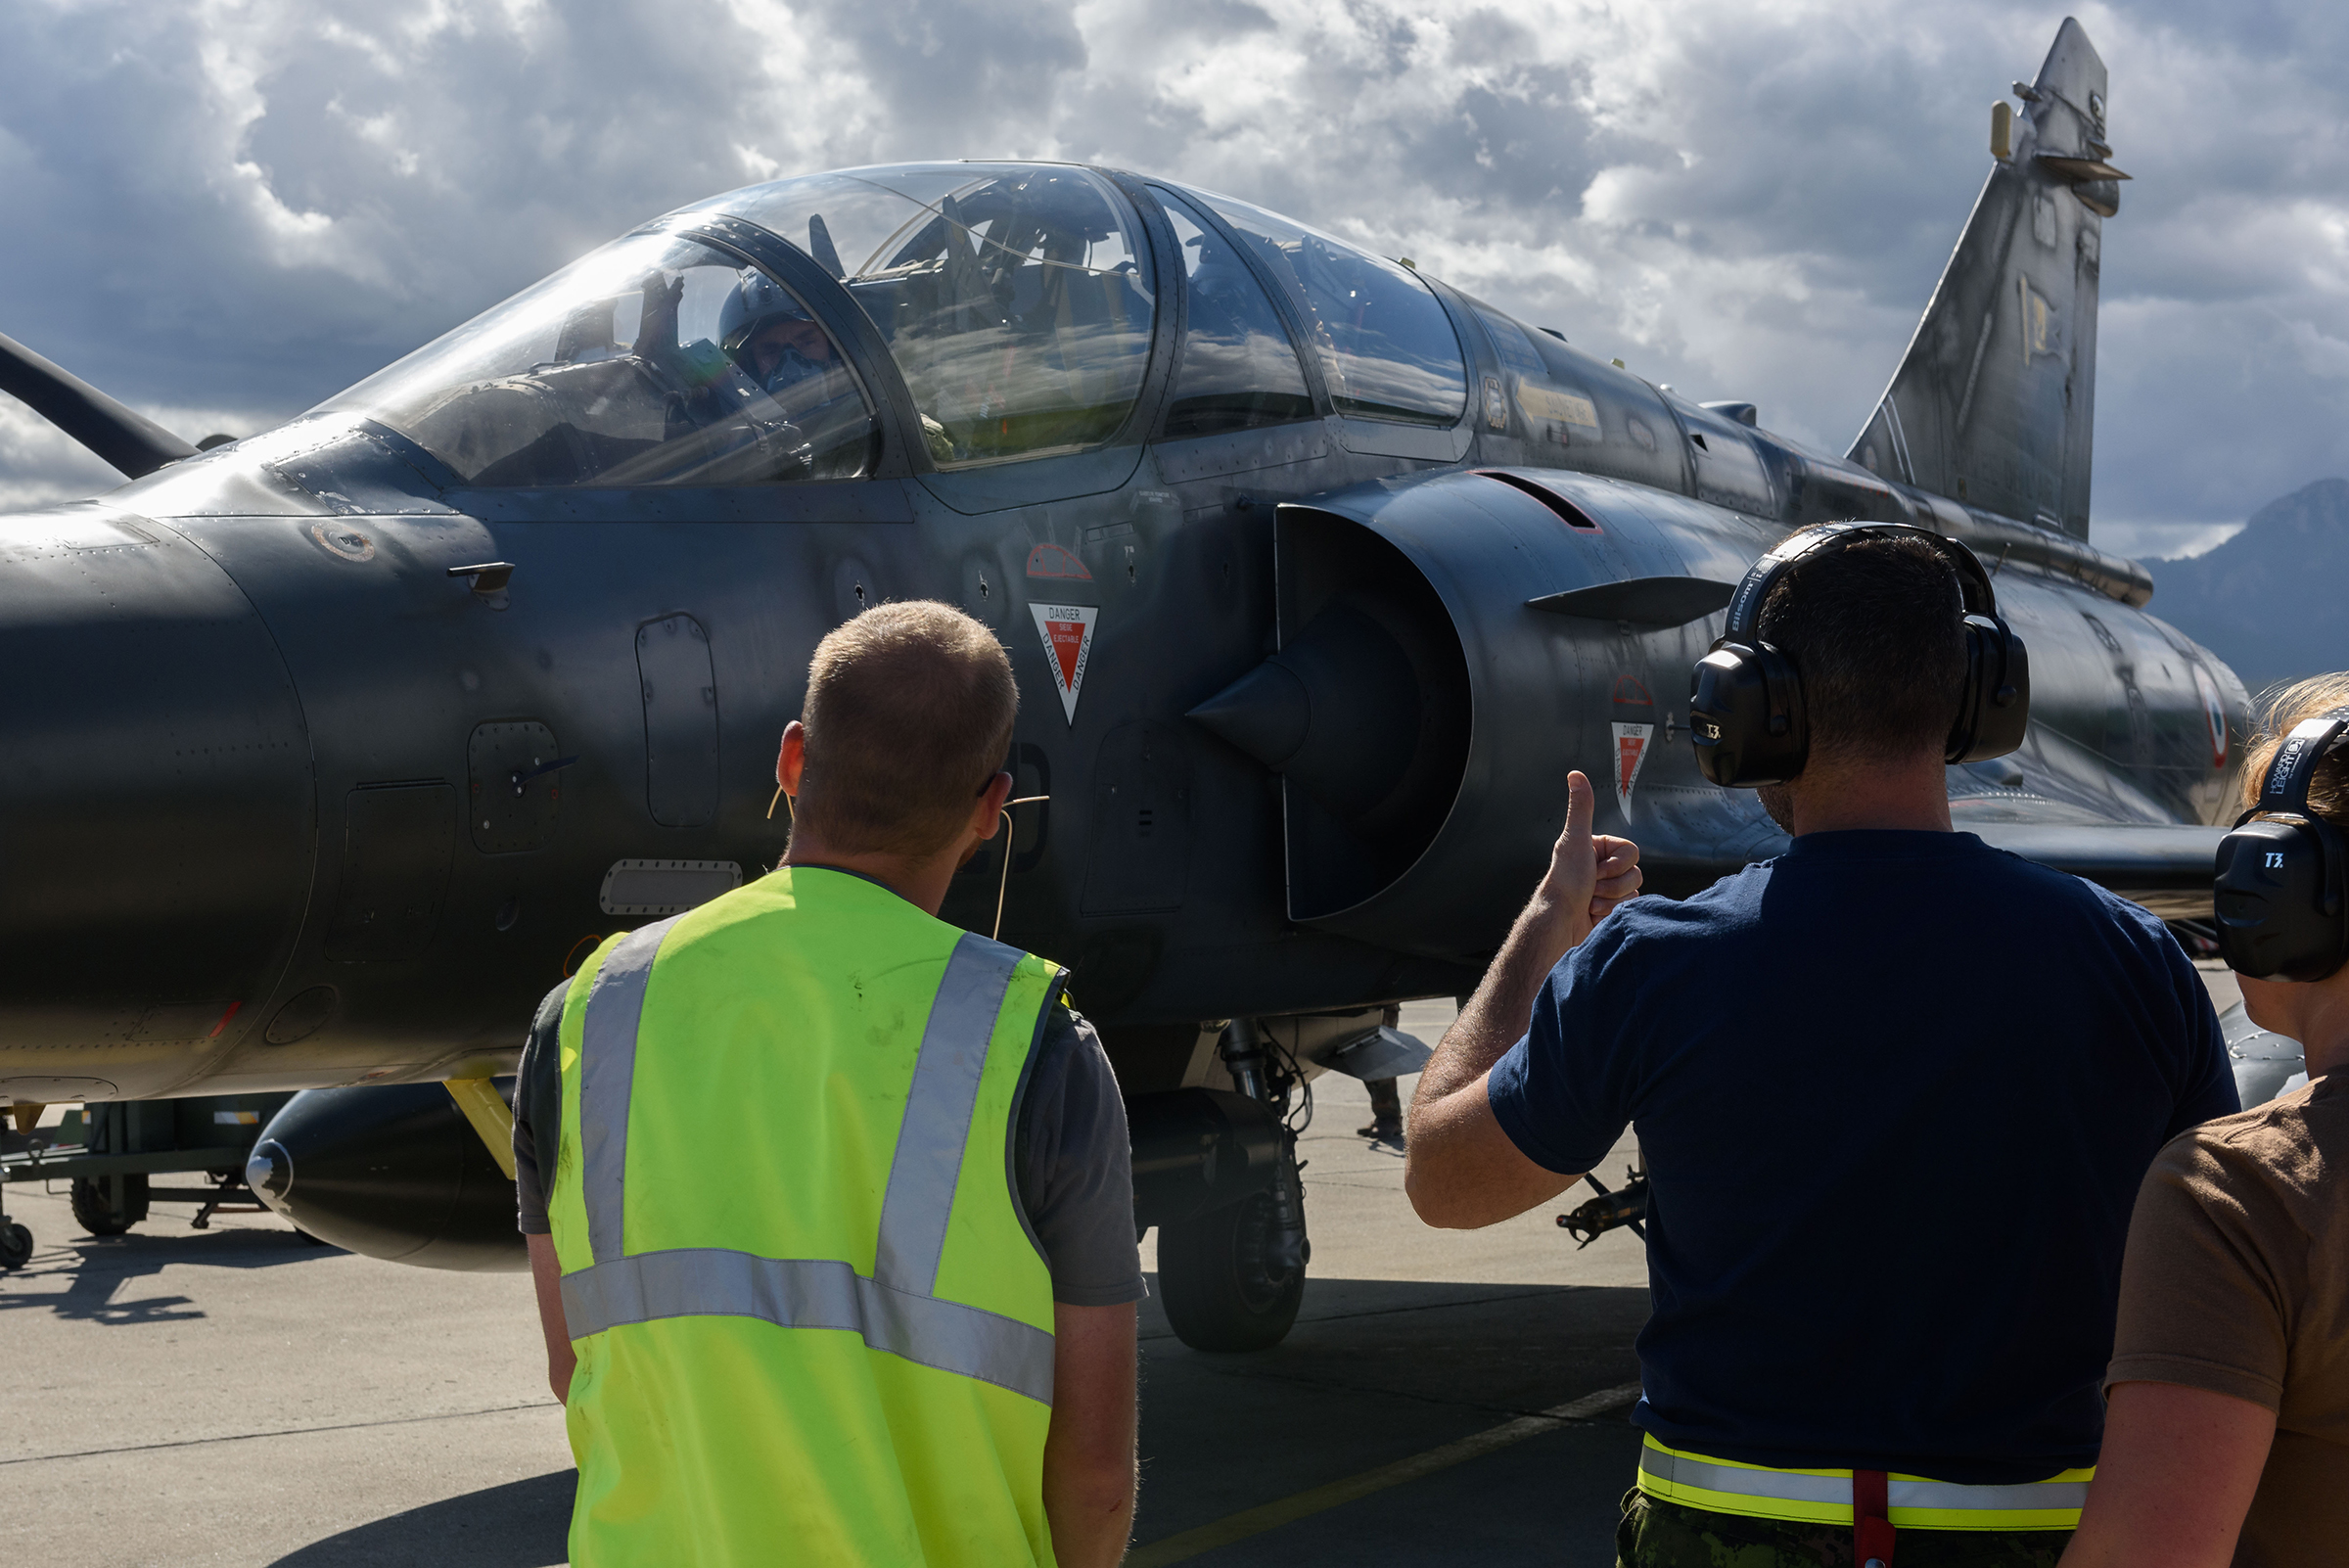 On September 20, 2017, Sergeant Sébastien Fohney of the French Air Force (left) introduces Corporal David Simard of the Royal Canadian Air Force to start-up procedures for a Mirage 2000 fighter aircraft during SERPENTEX 2017 in Corsica. PHOTO: Master Corporal Louis Brunet, BN53-2017-0003-006